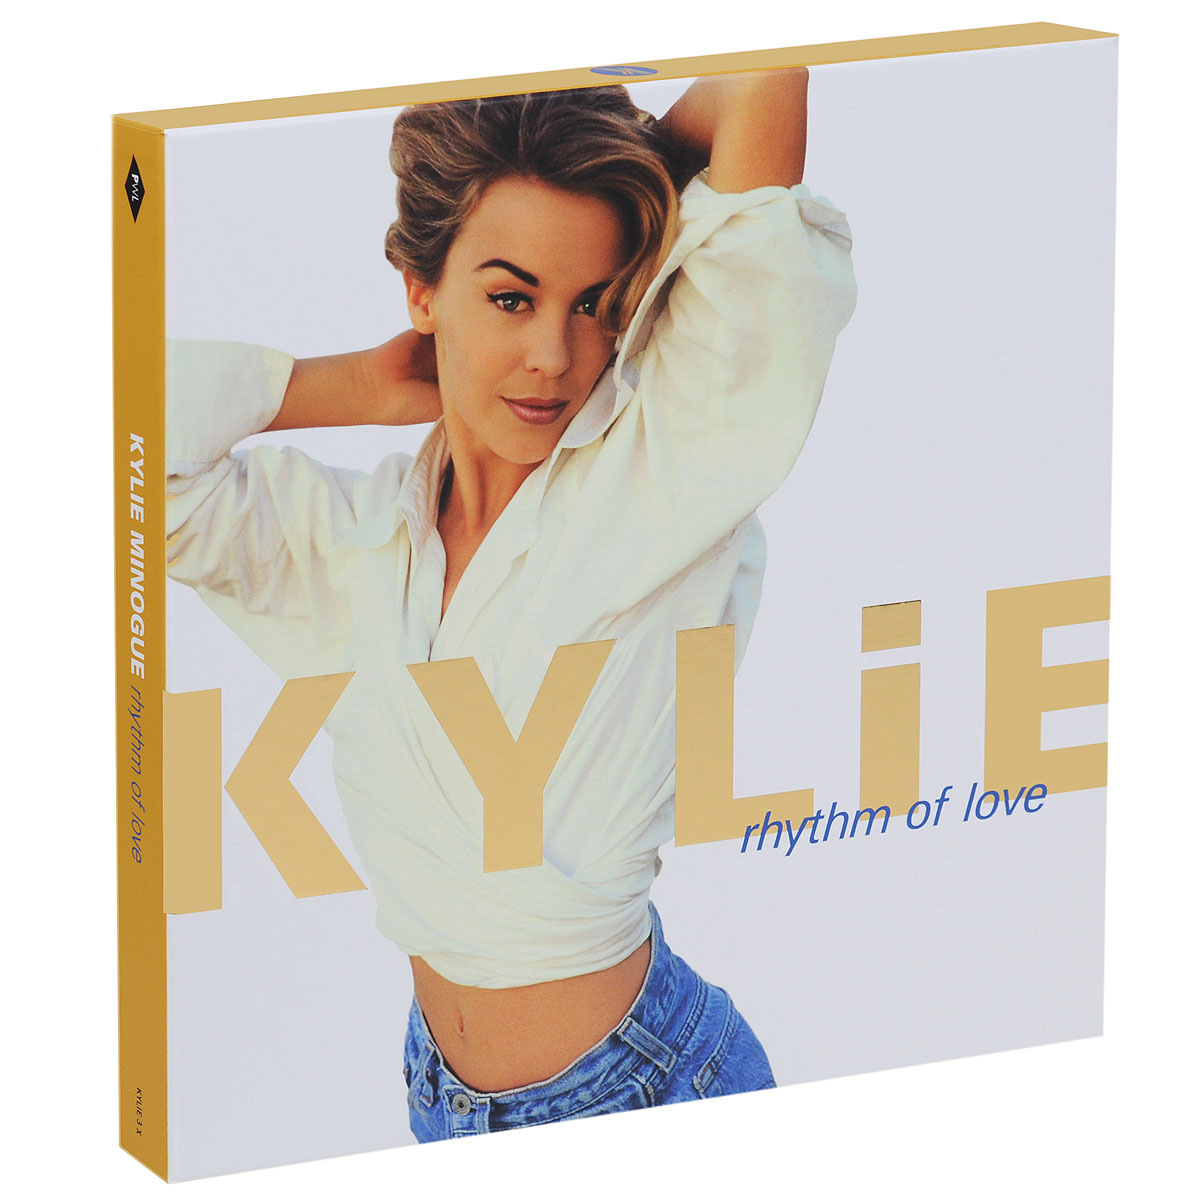 Кайли Миноуг Kylie Minogue. Rhythm Of Love (2 CD + DVD + LP) the best of kylie minogue special edition cd dvd